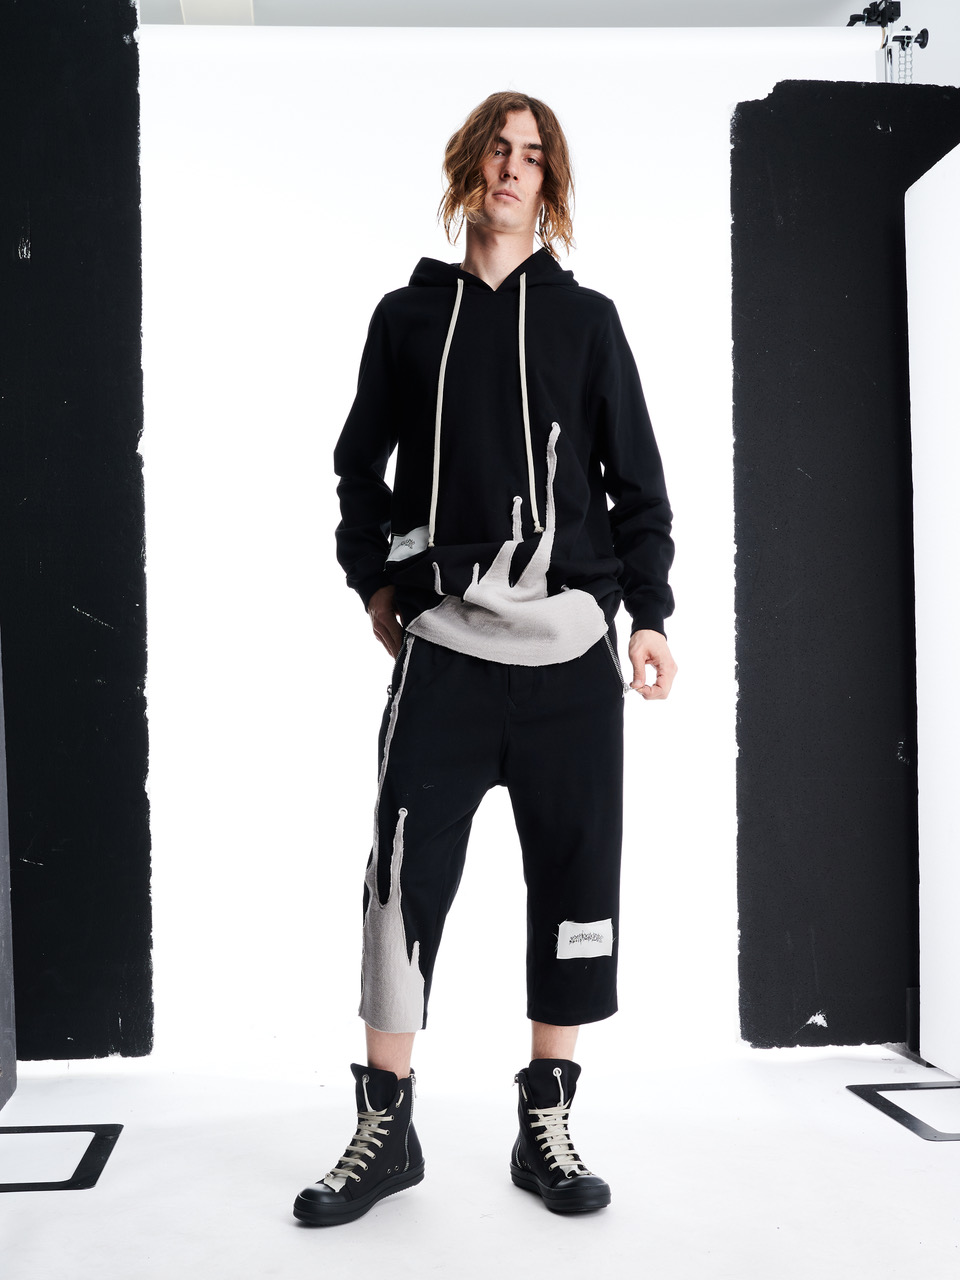 Rick Owens sustainable capsule created in collaboration with Swampgod